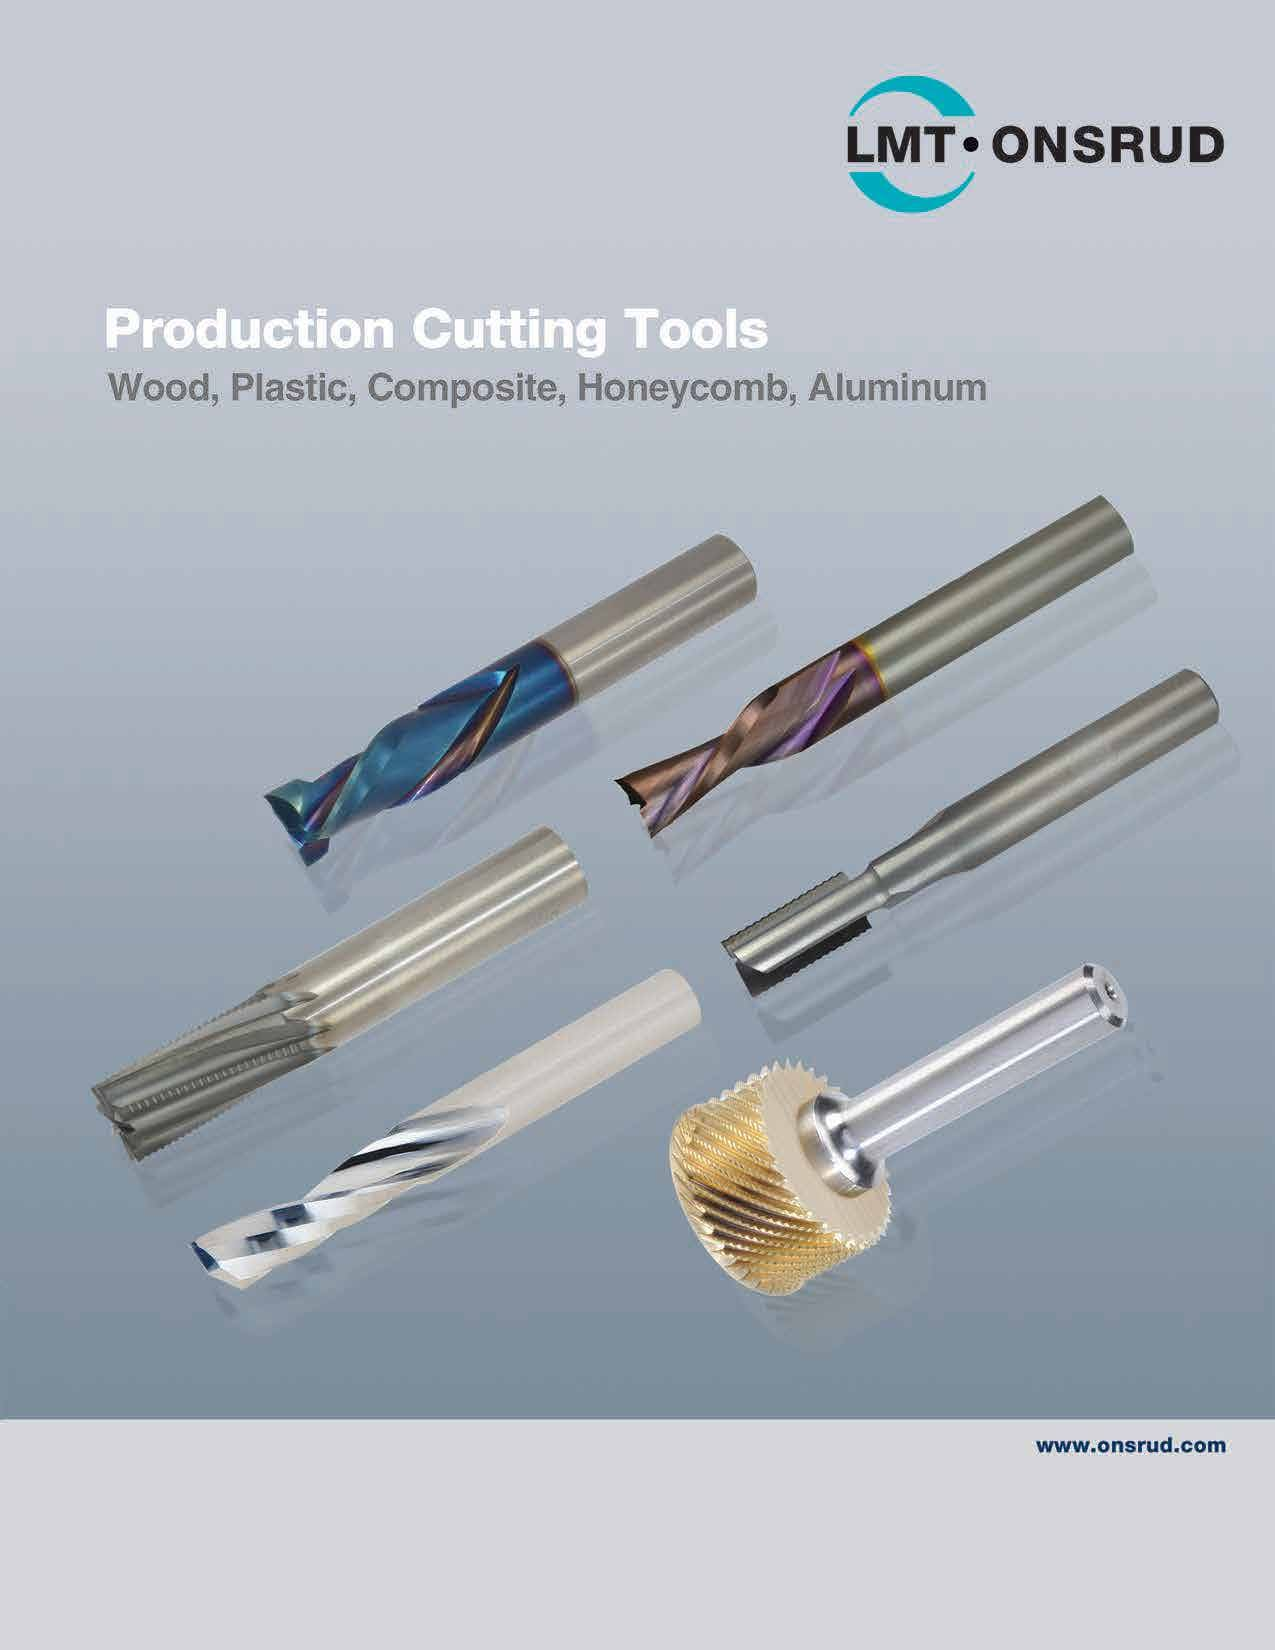 LMT Onsrud - Production Cutting Tools